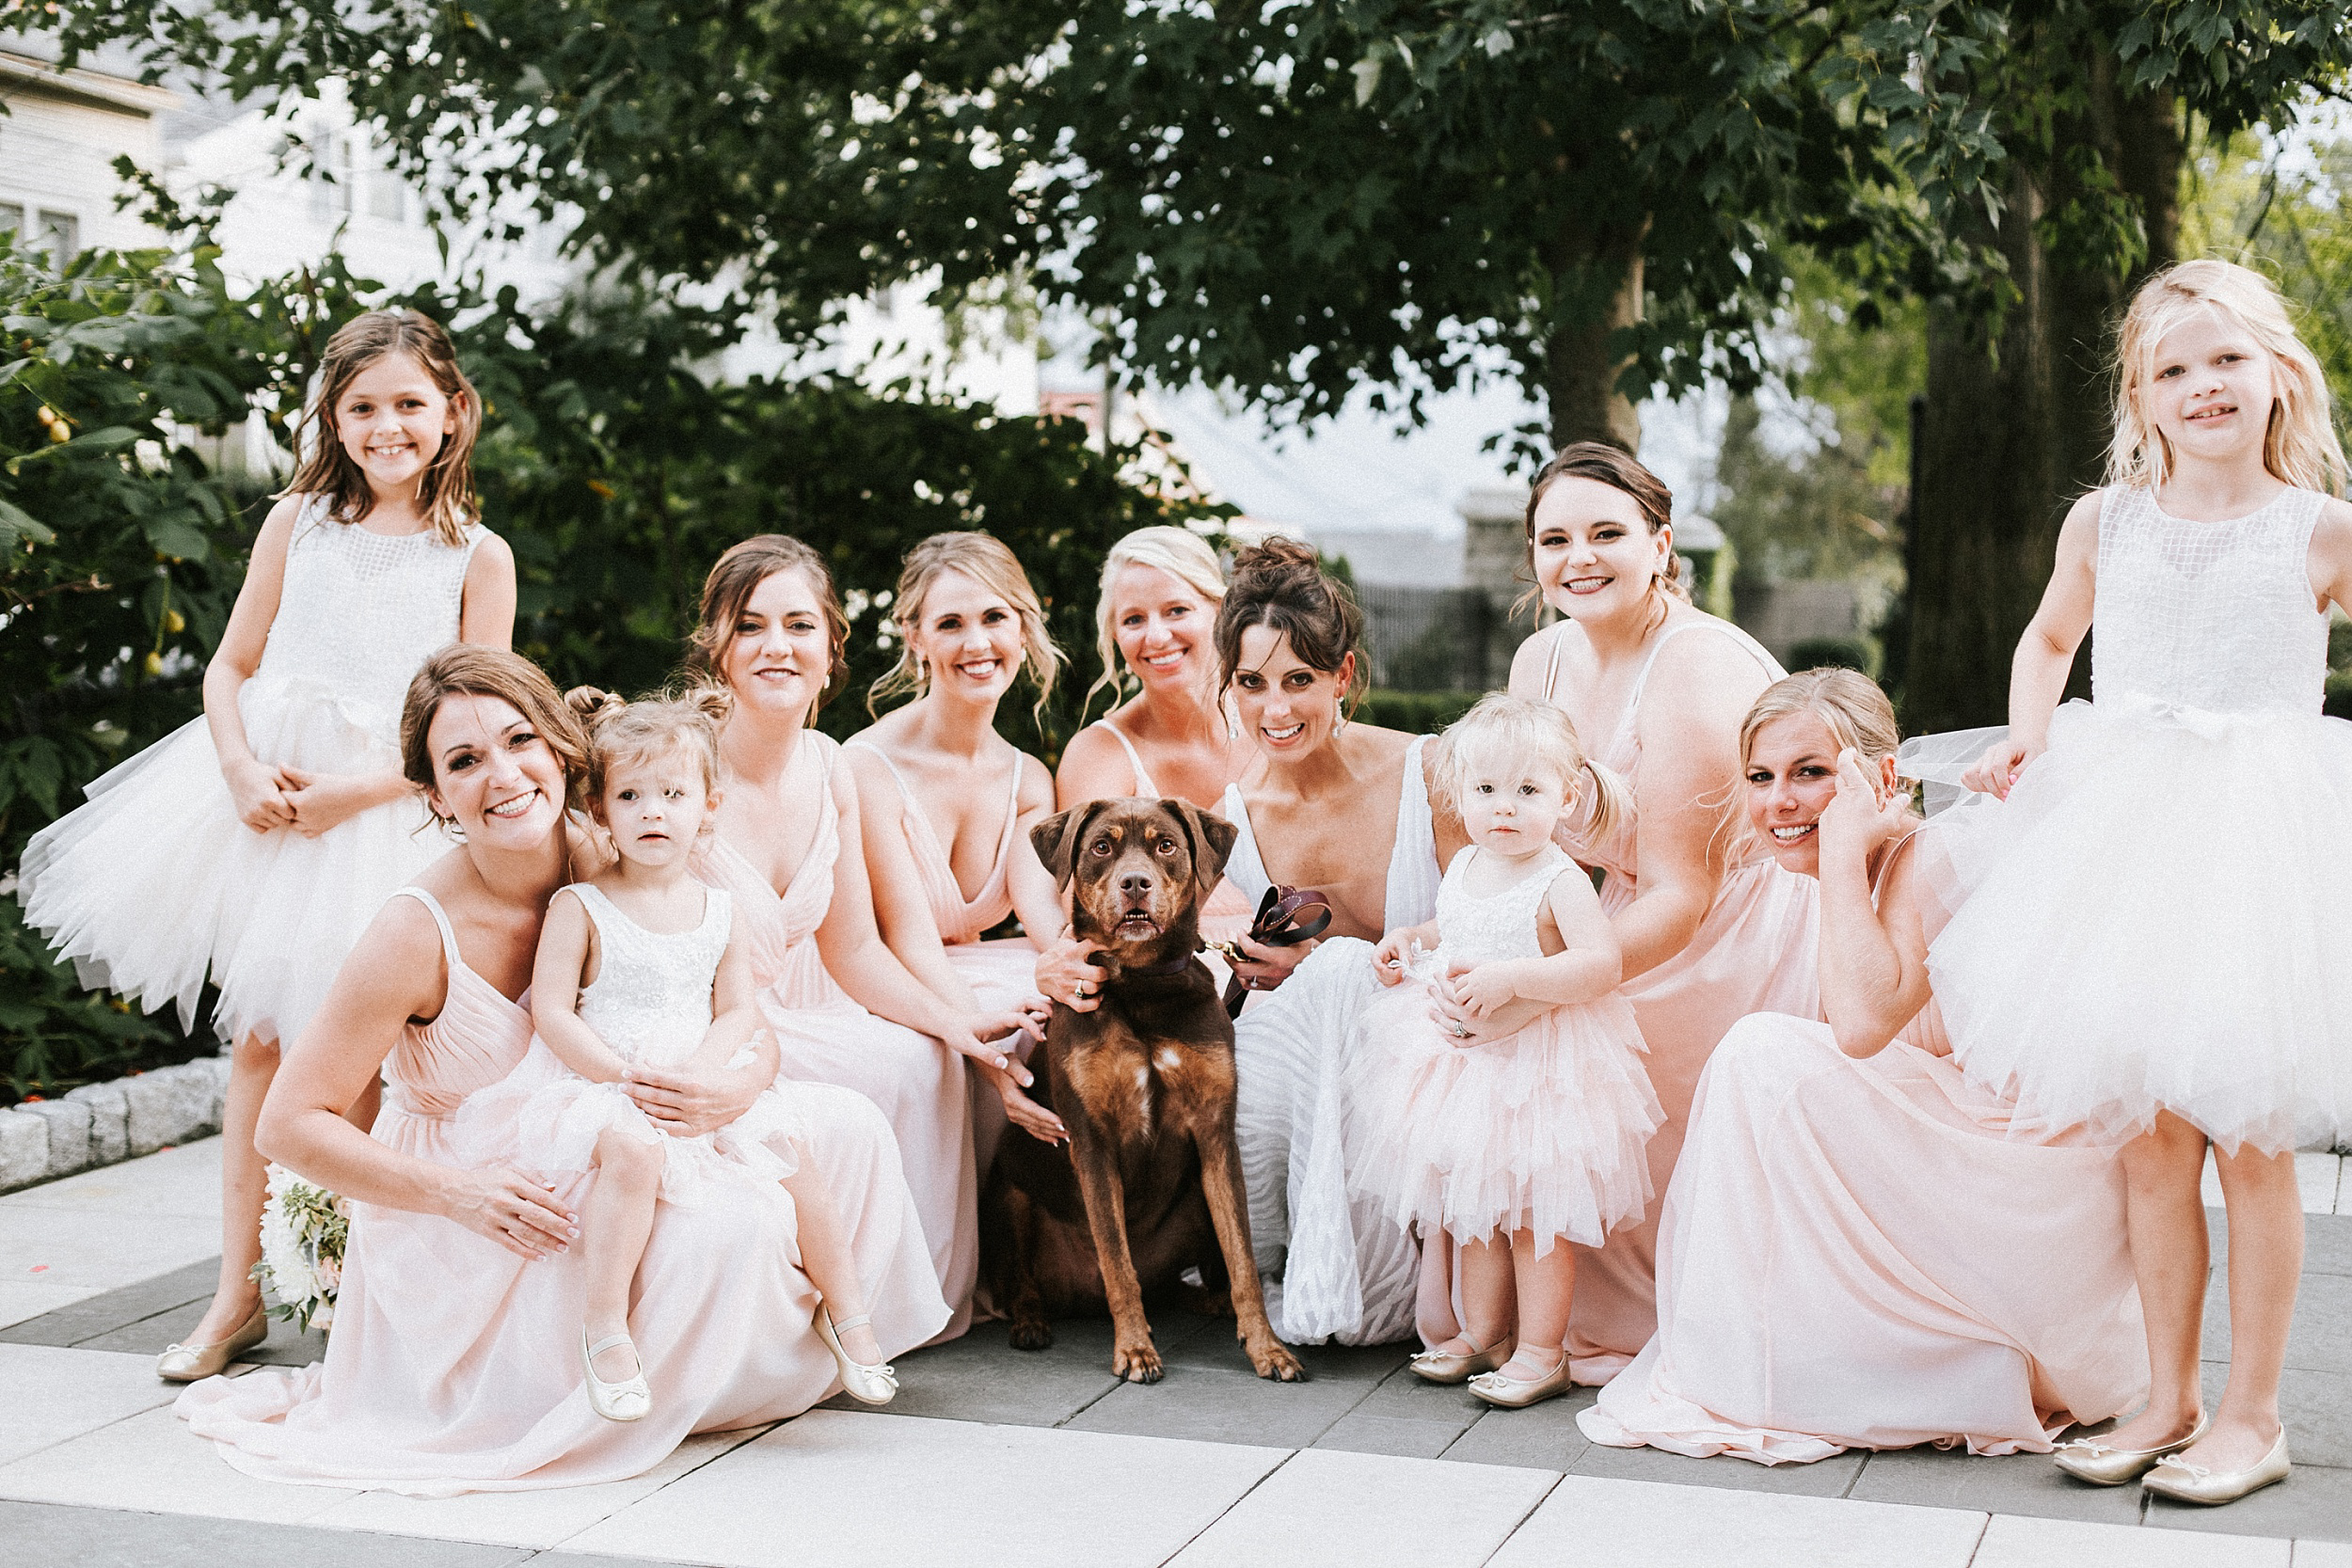 Brooke Townsend Photography - Cincinnati Wedding Photographer (74 of 170).jpg